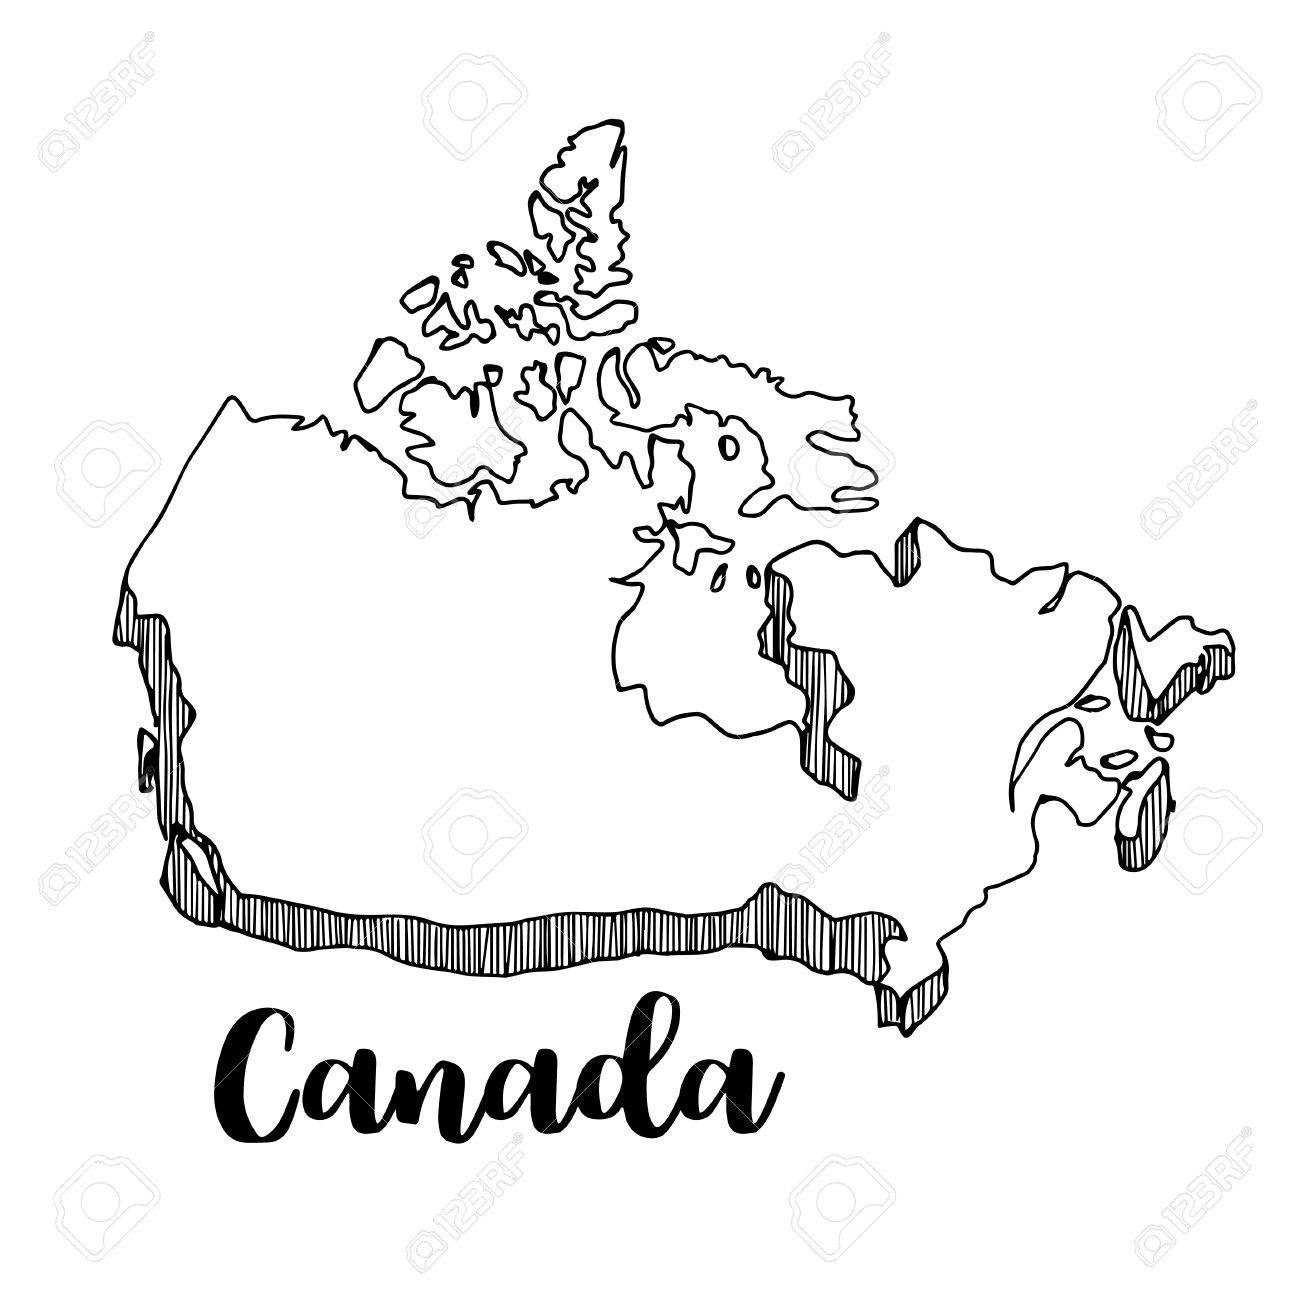 Hand Drawn Of Canada Map Vector Illustration Royalty Free Cliparts